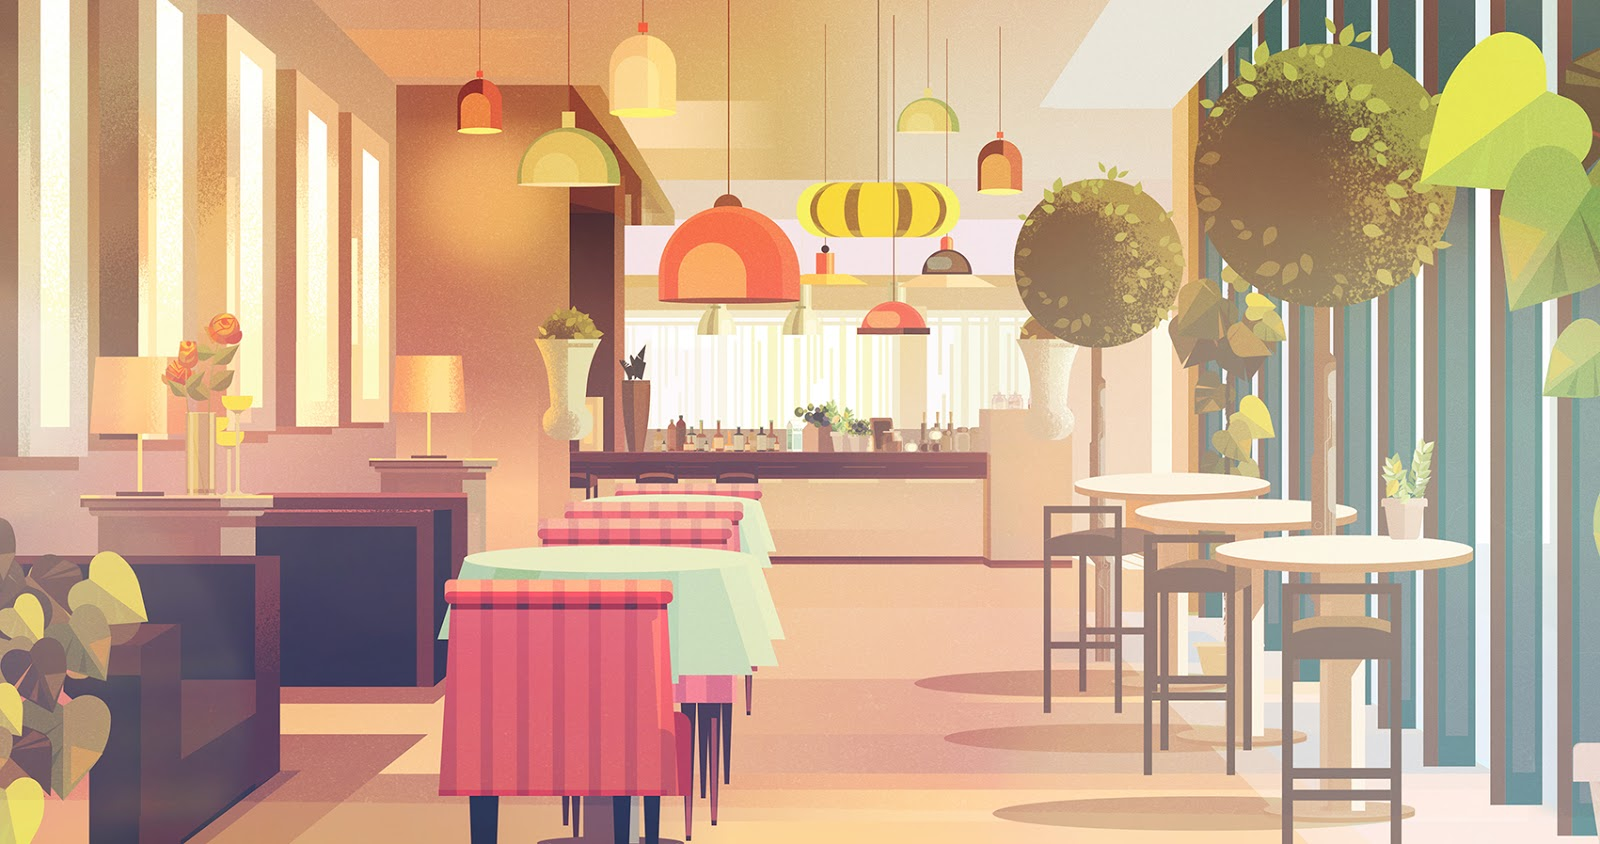 James Gilleard Animation Backgrounds